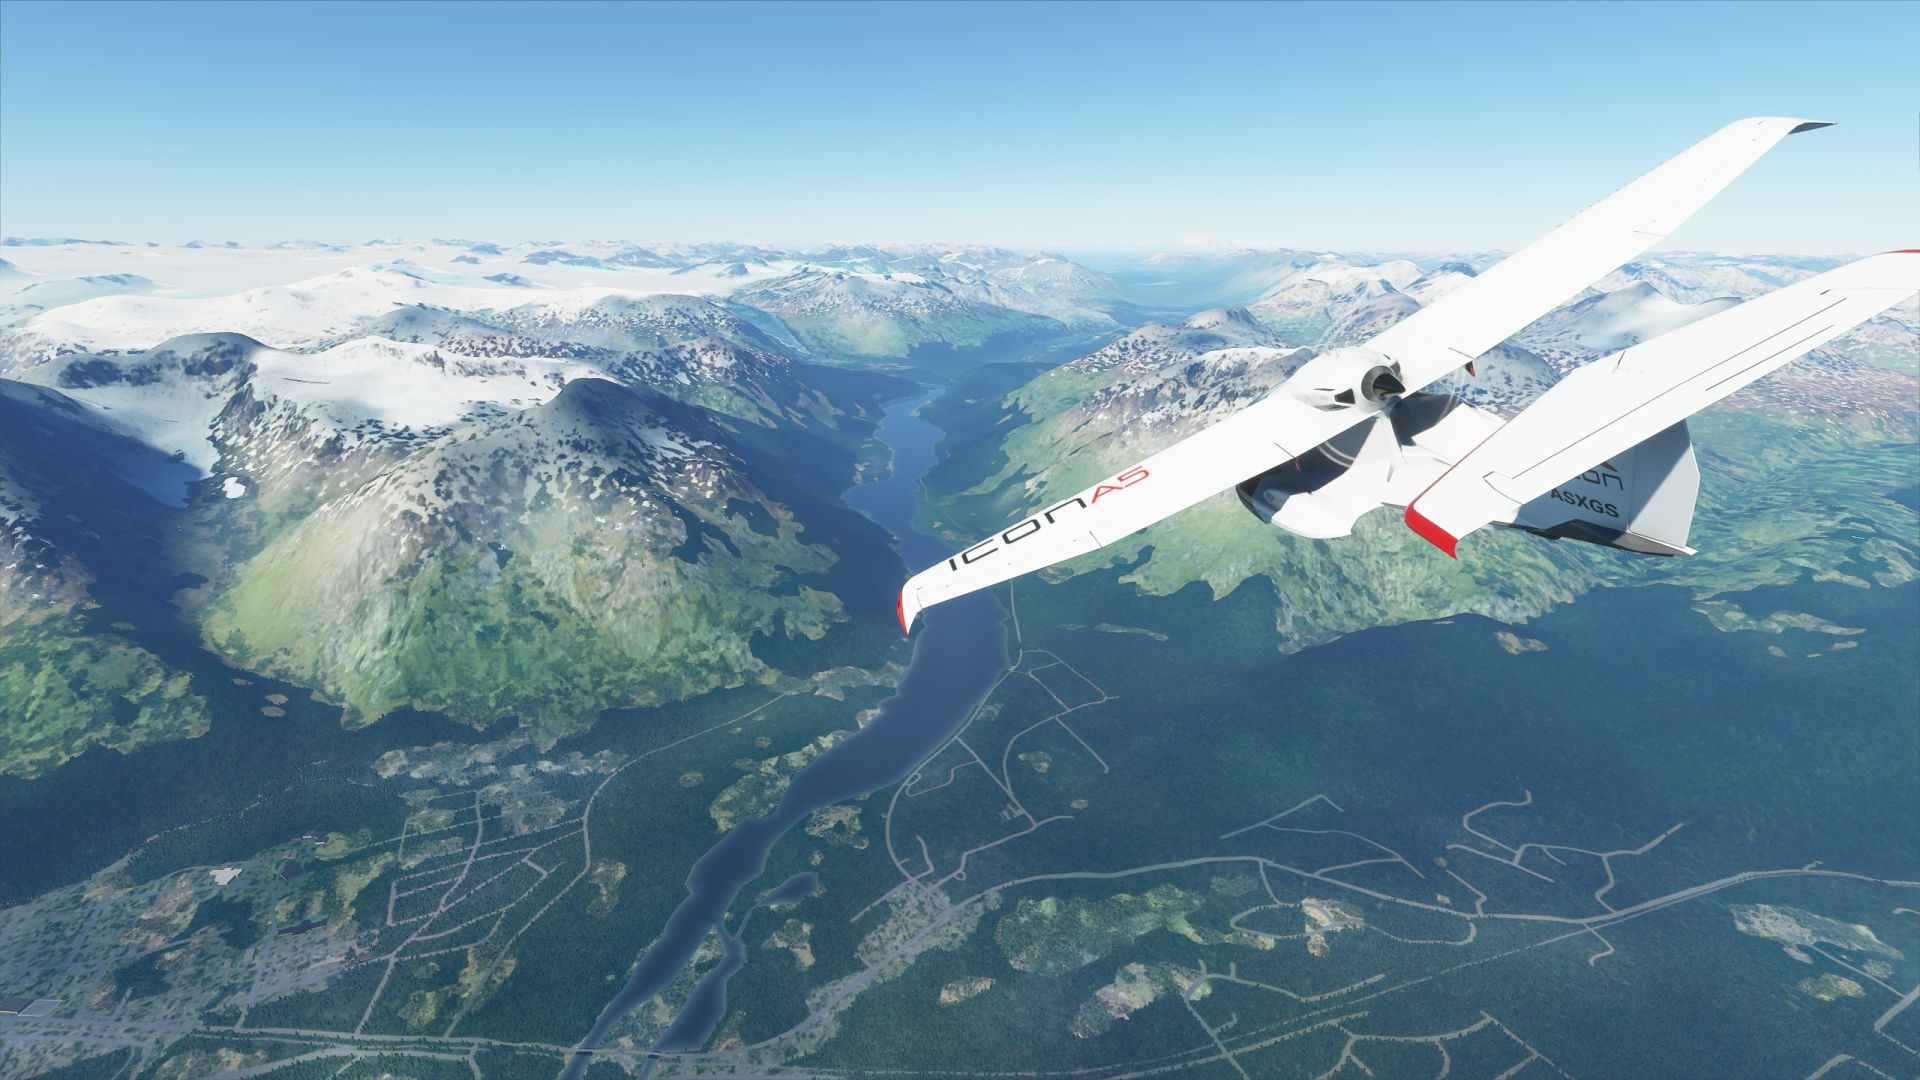 A Microsoft Flight Simulator screenshot. A small plane flies over the Alaskan landscape. A flat river runs between two mountains.